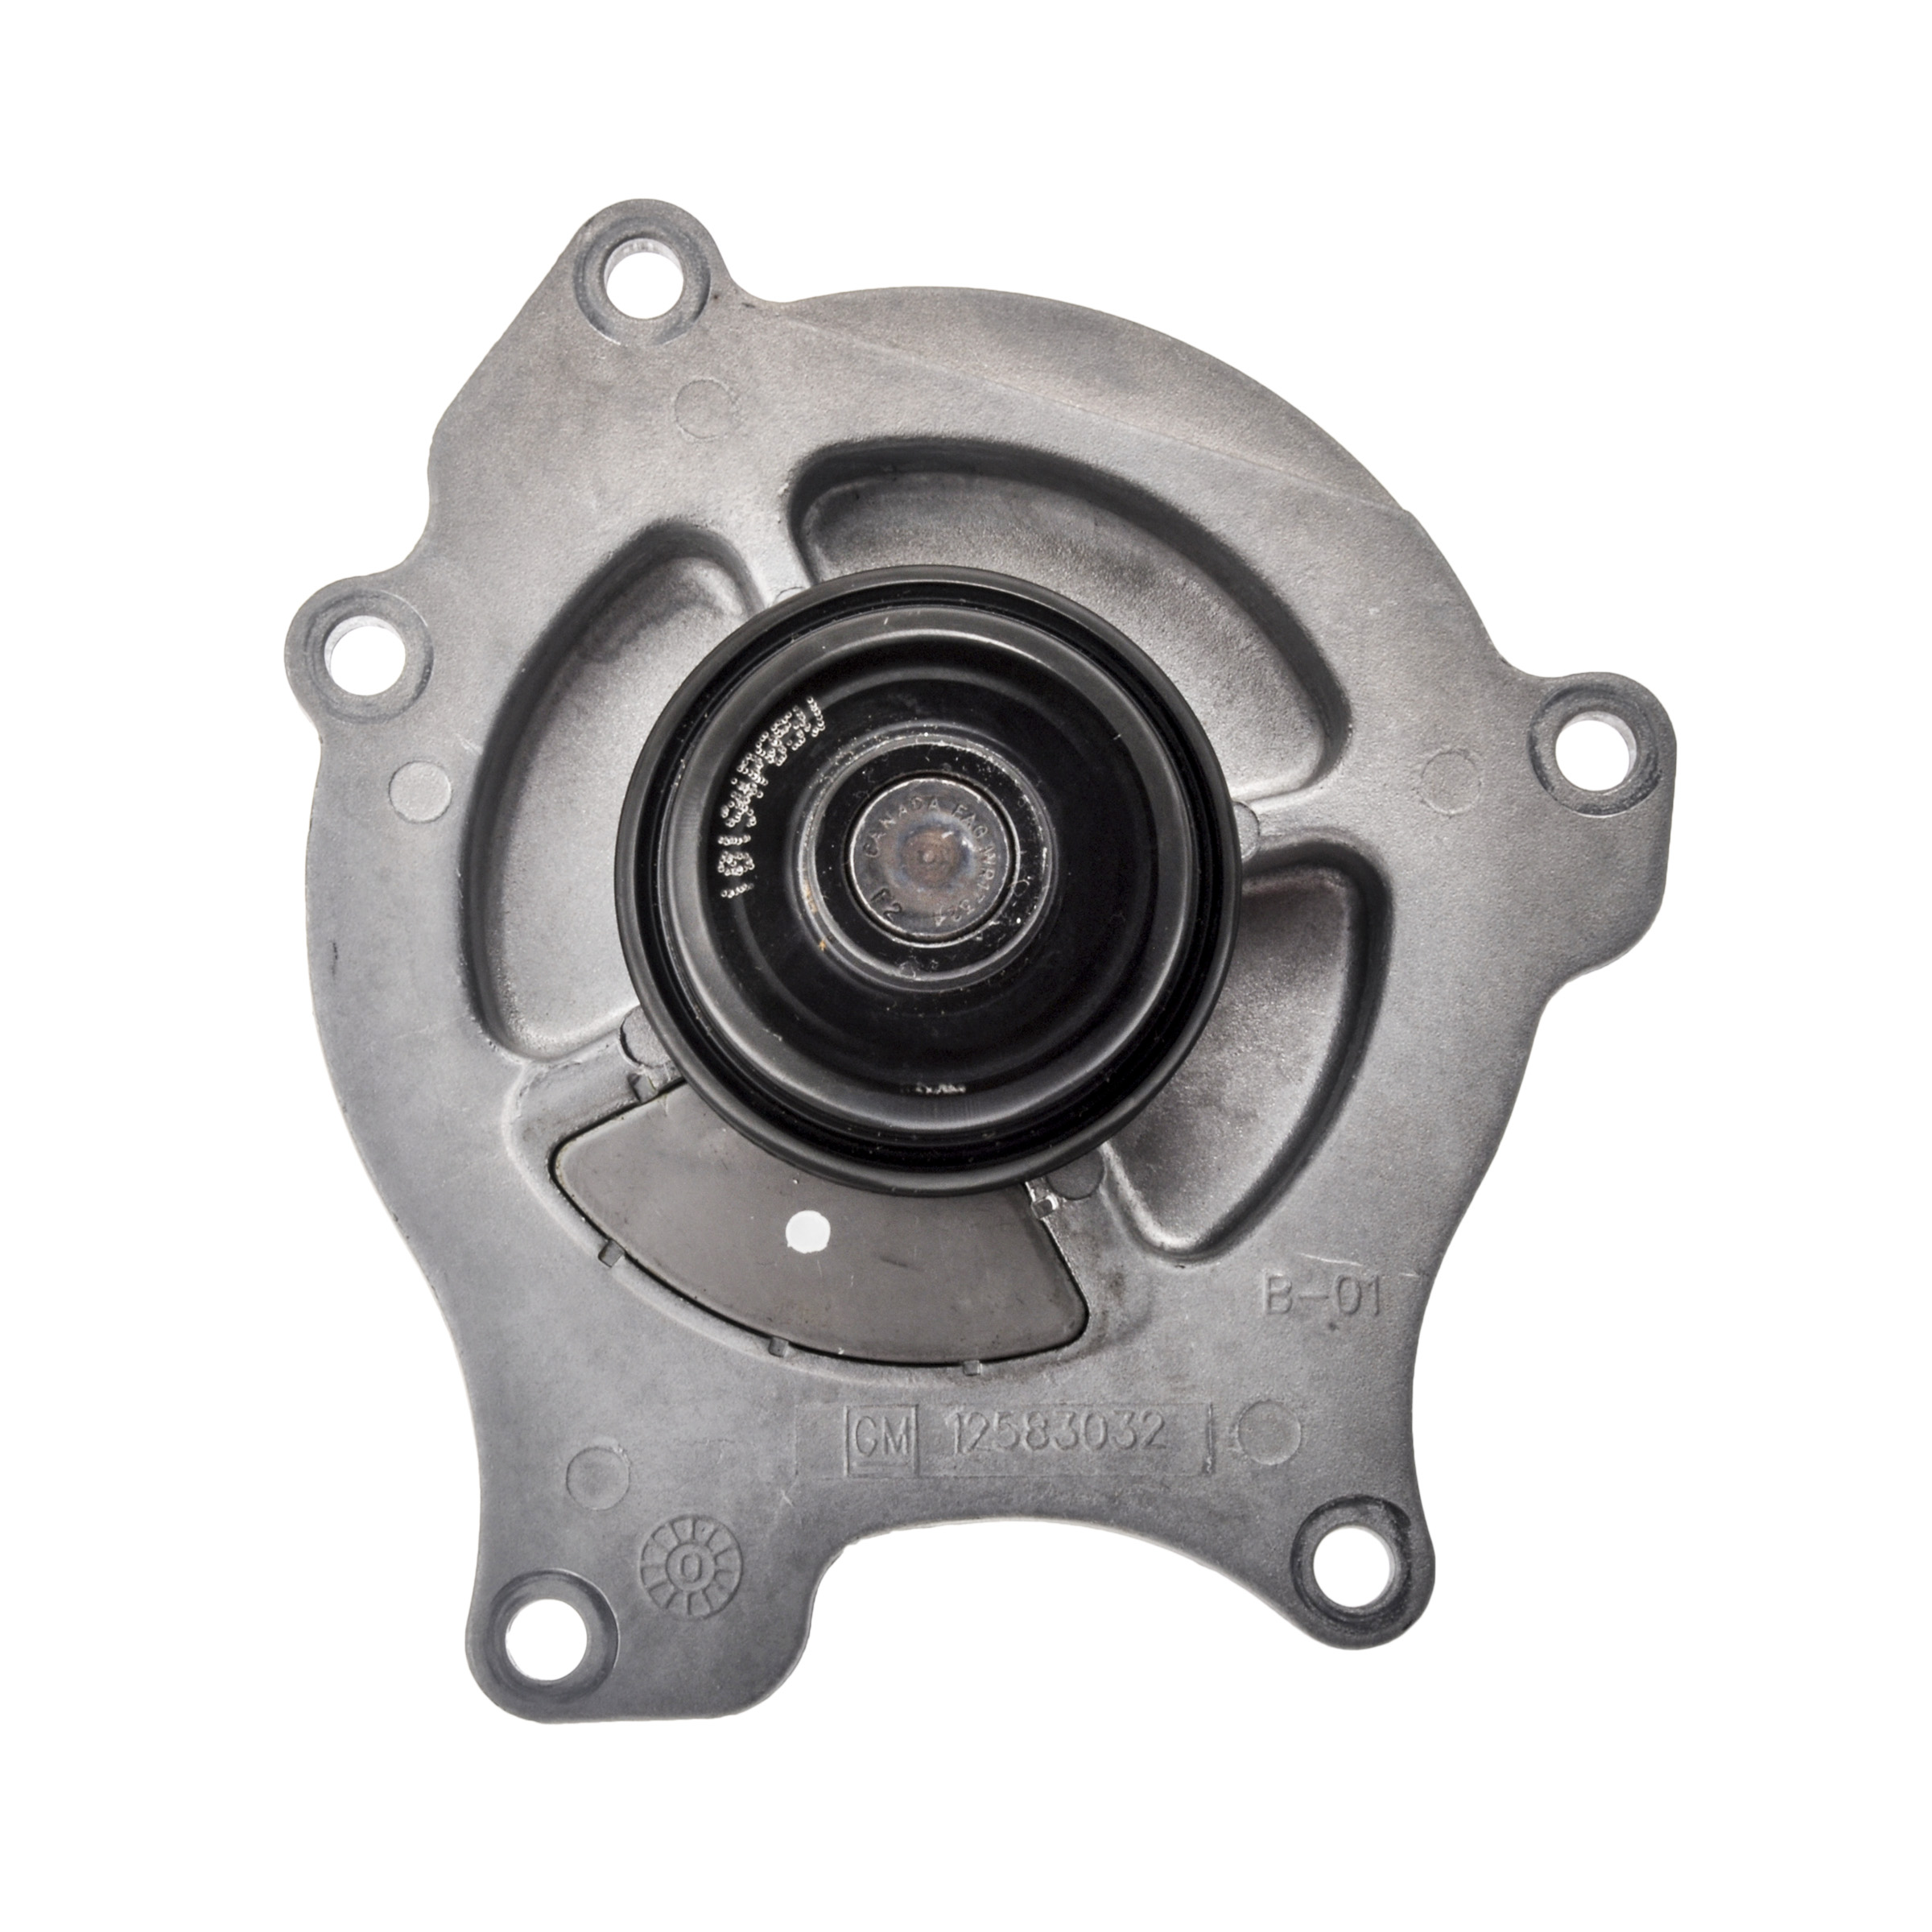 [Change A Water Pump On A 2006 Cadillac Cts V]